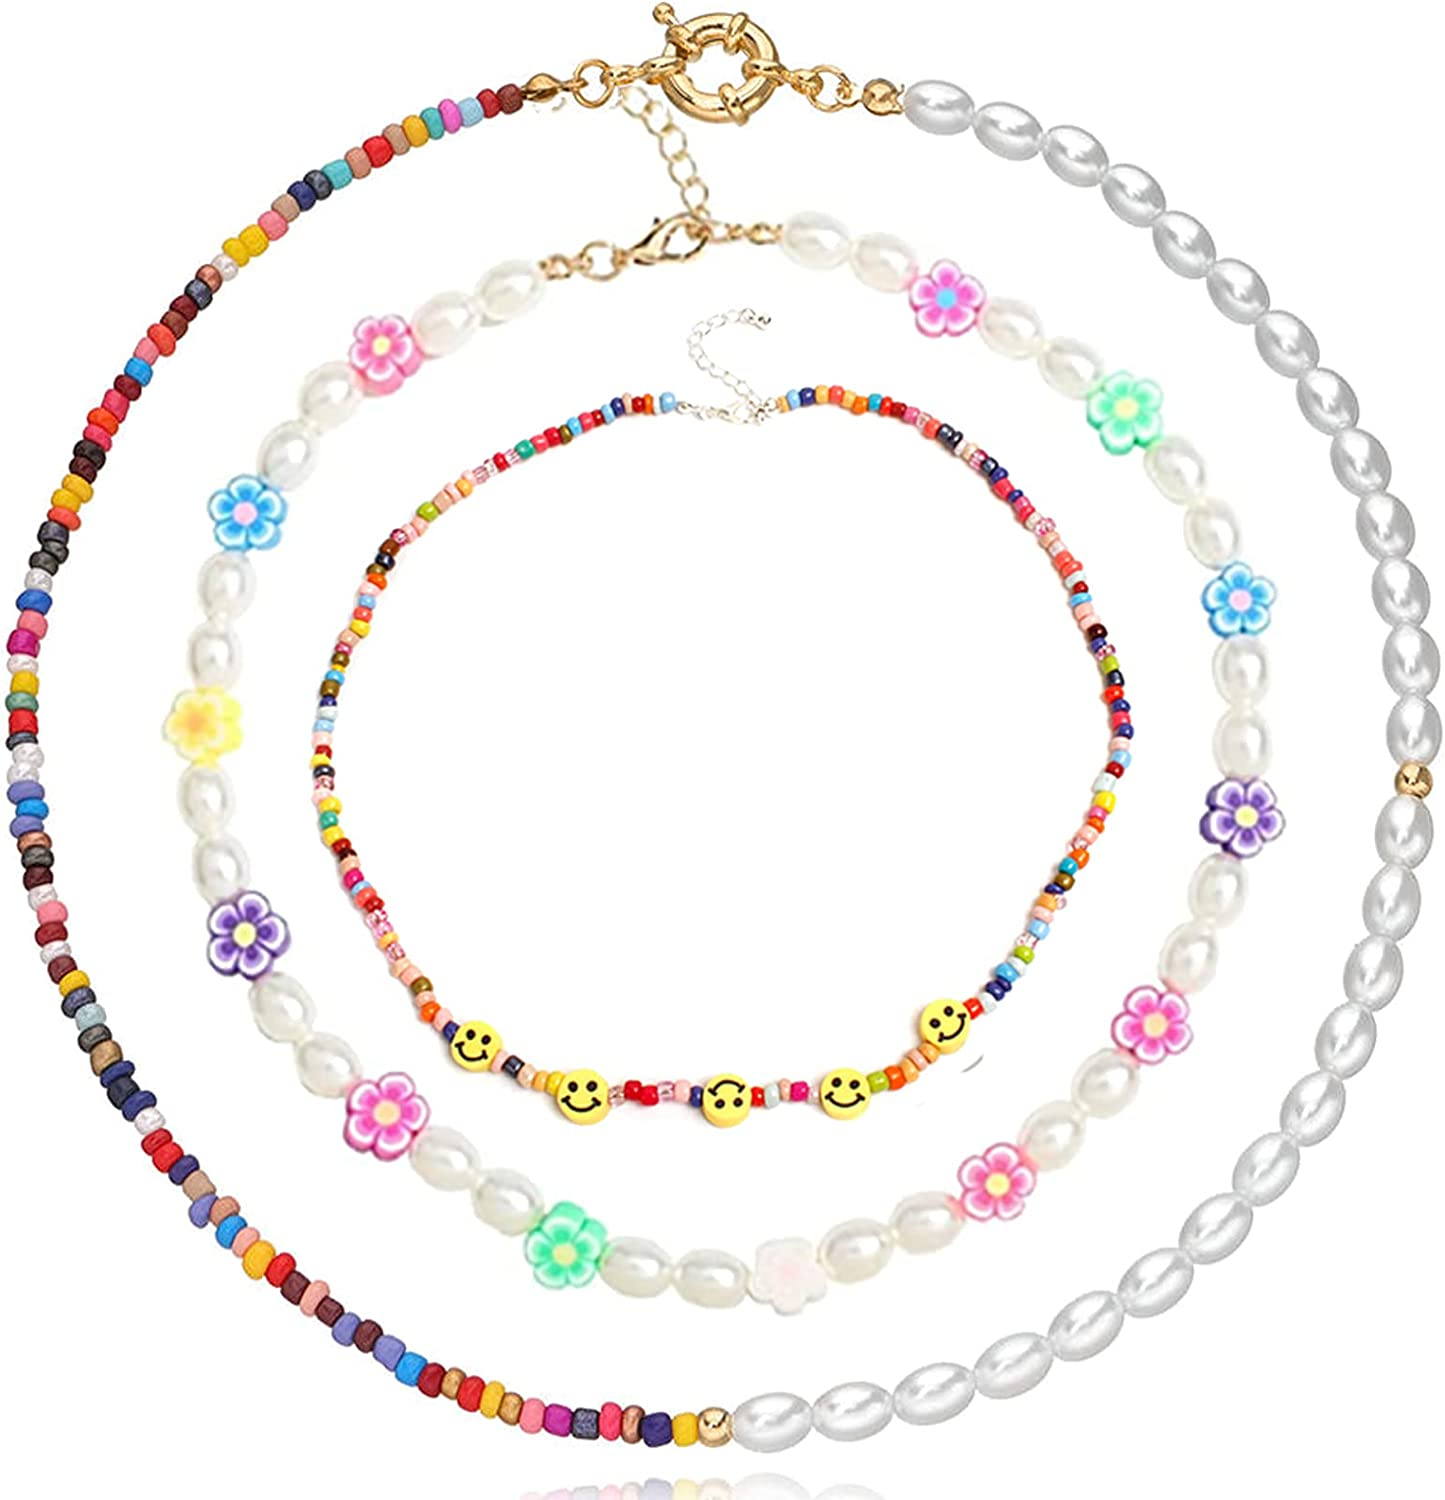 JEWPARK 1-3 PCS Y2K Beaded Choker Necklaces for Women Vsco Boho Handmade Flower Necklace Cute Necklace for Teen Girls Beach Necklace